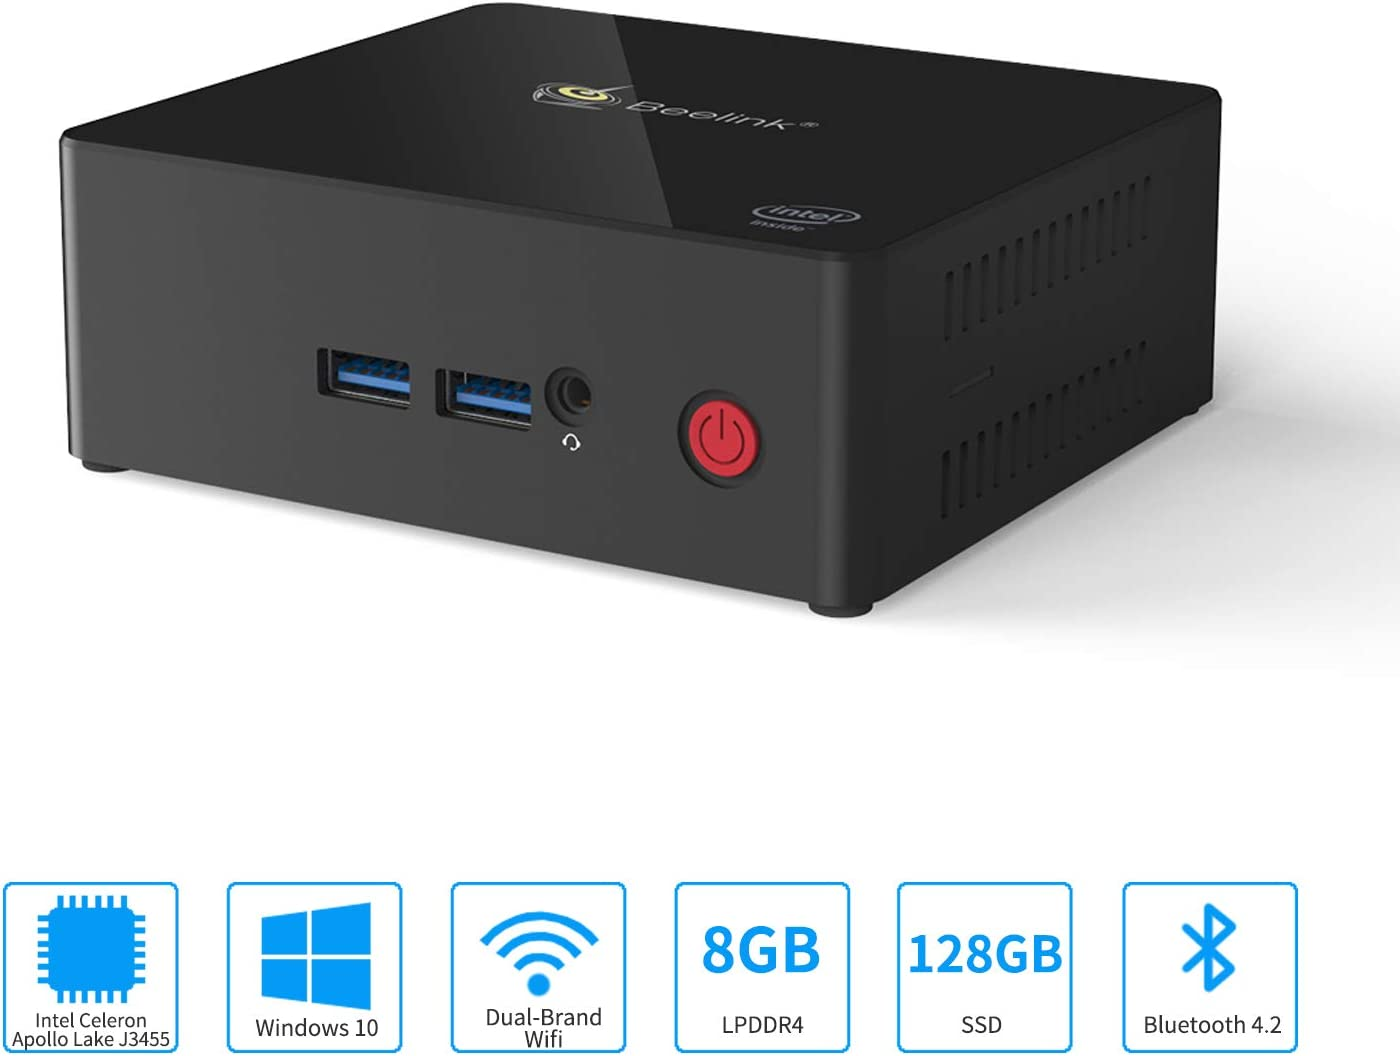 Mini PC, Aoxun Windows 10 64-bit Intel Celeron J3455 Processor(up to 2.3GHz) Desktop Computer,8G DDR3 128G SSD,1000Mbps LAN / 2.4+5.8G WiFi / BT4.2/4xUSB/2xHDMI/4K